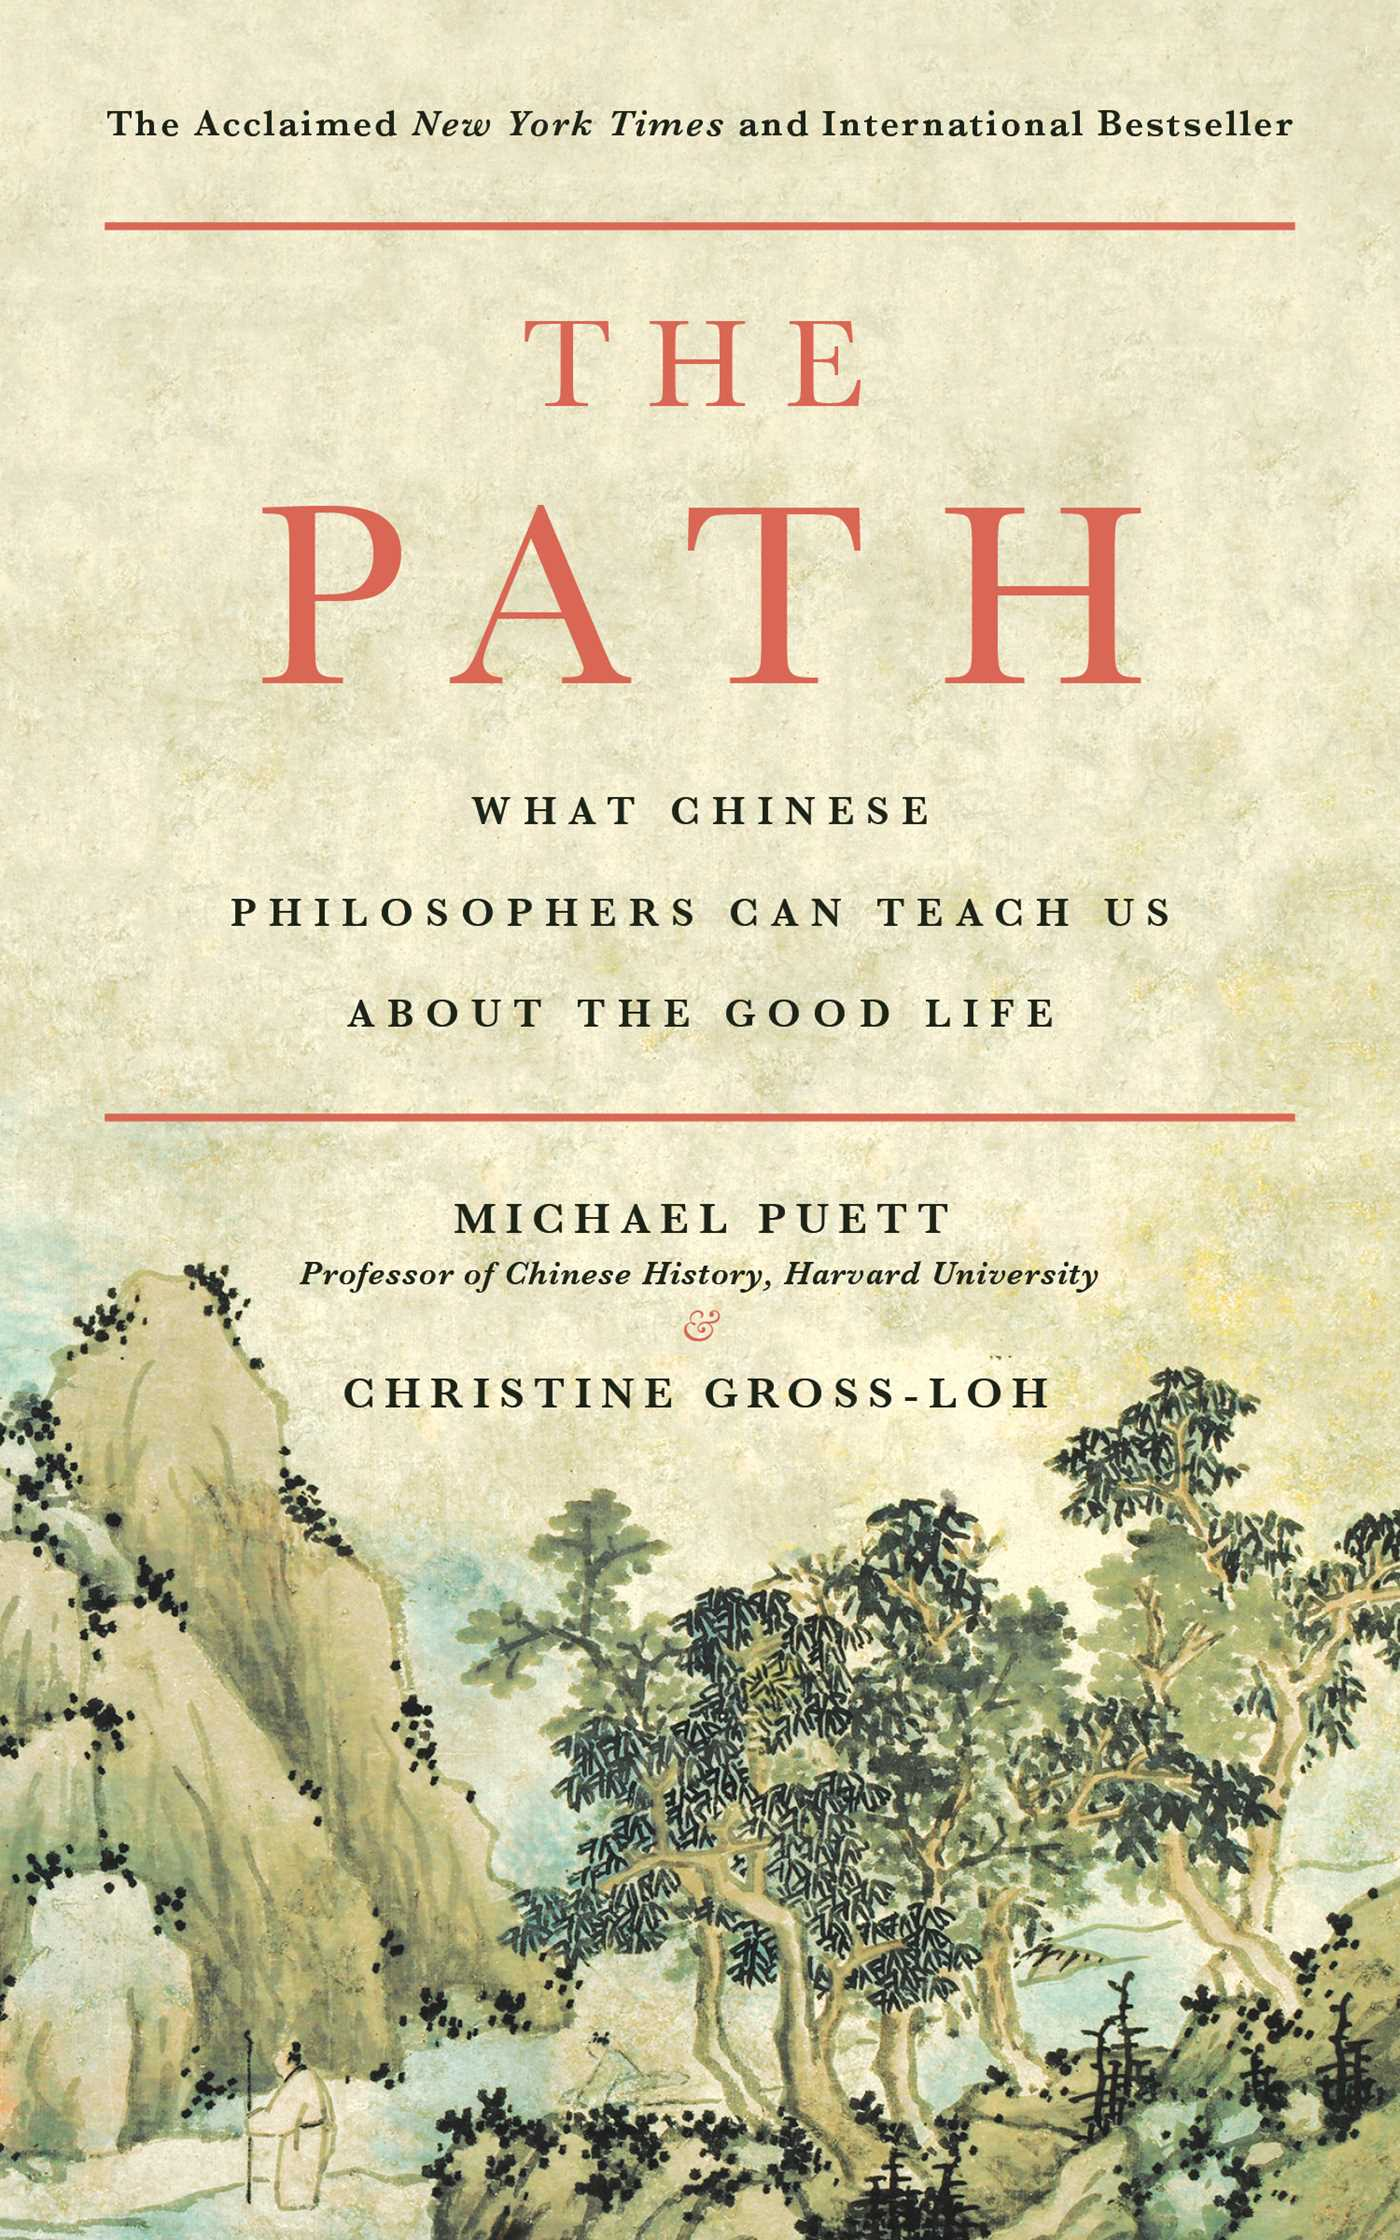 The Path What Chinese Philosophers Can Teach Us About the Good Life by Michael Puett and Christine Gross-Loh